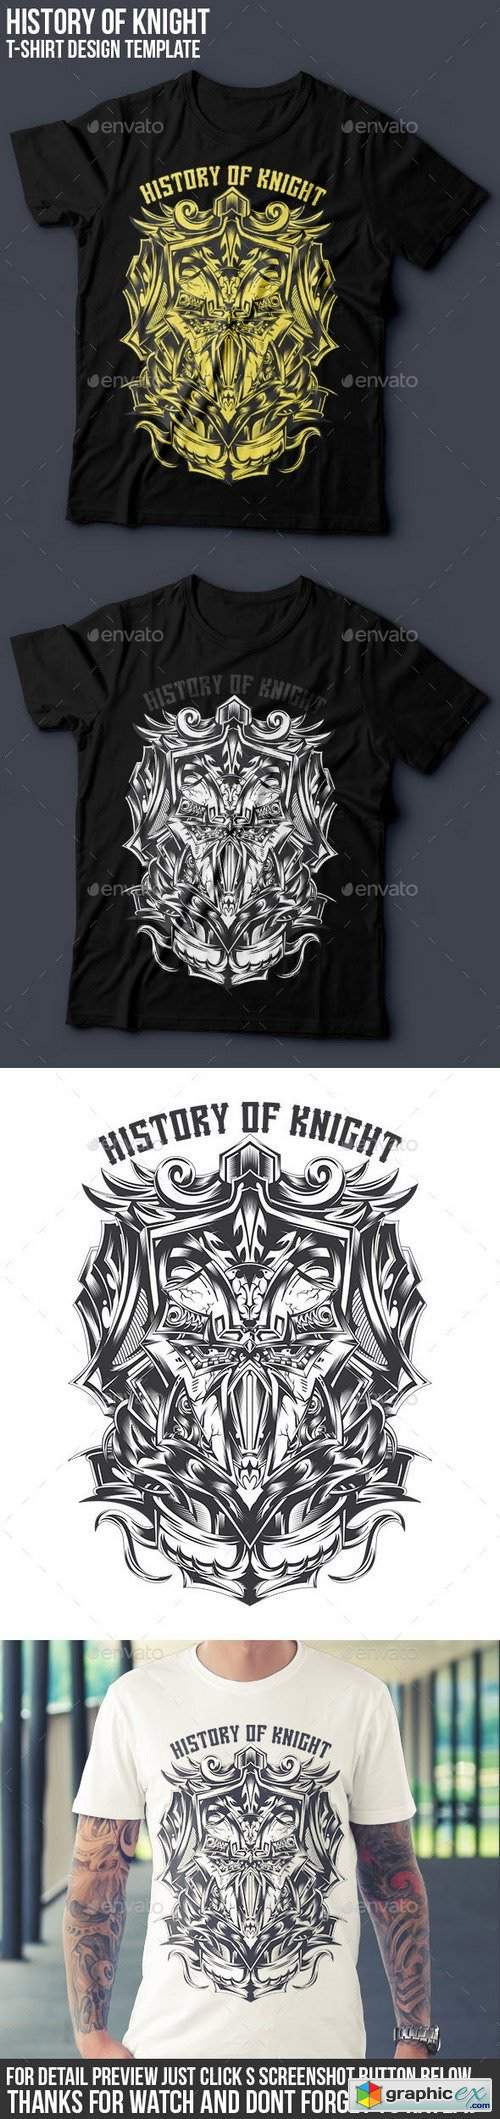 History of Knight T-shirt Design